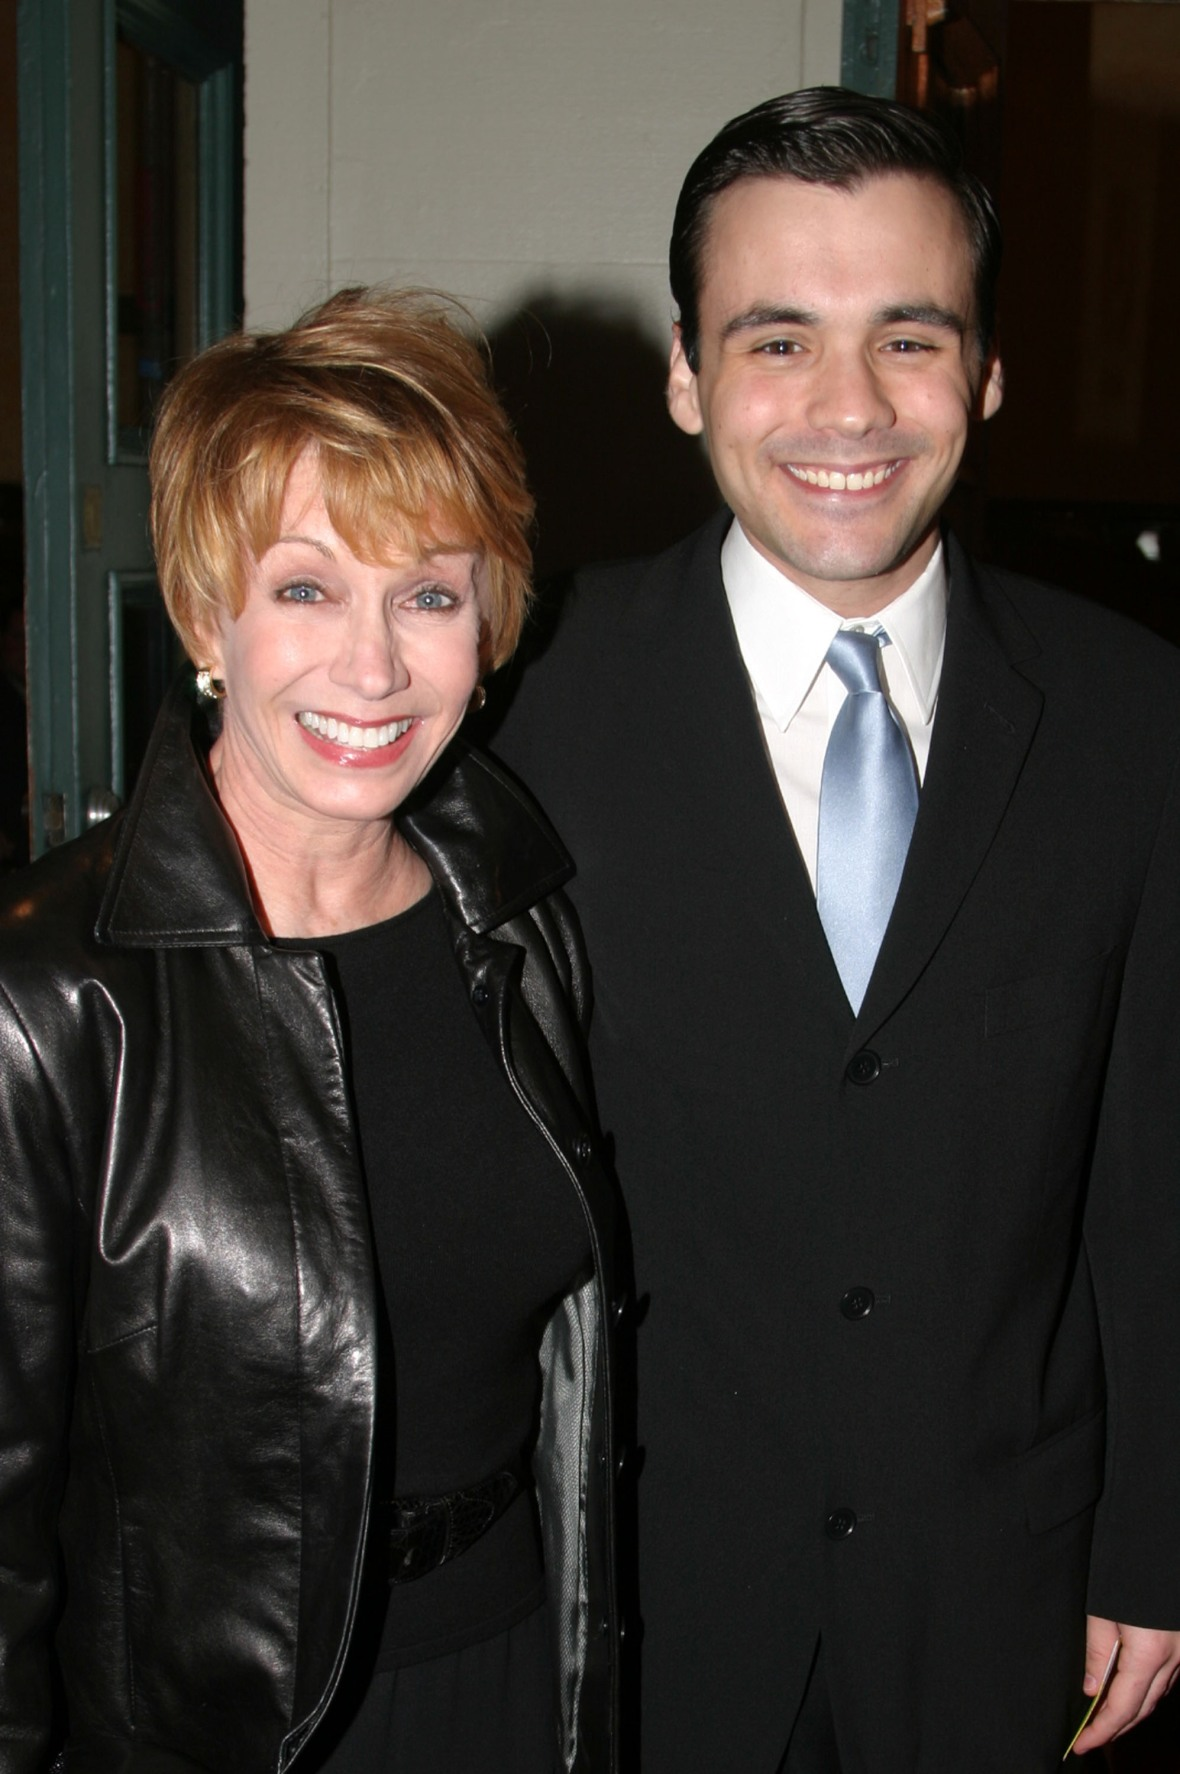 sandy and her son jeffrey. (photo credit: getty images)